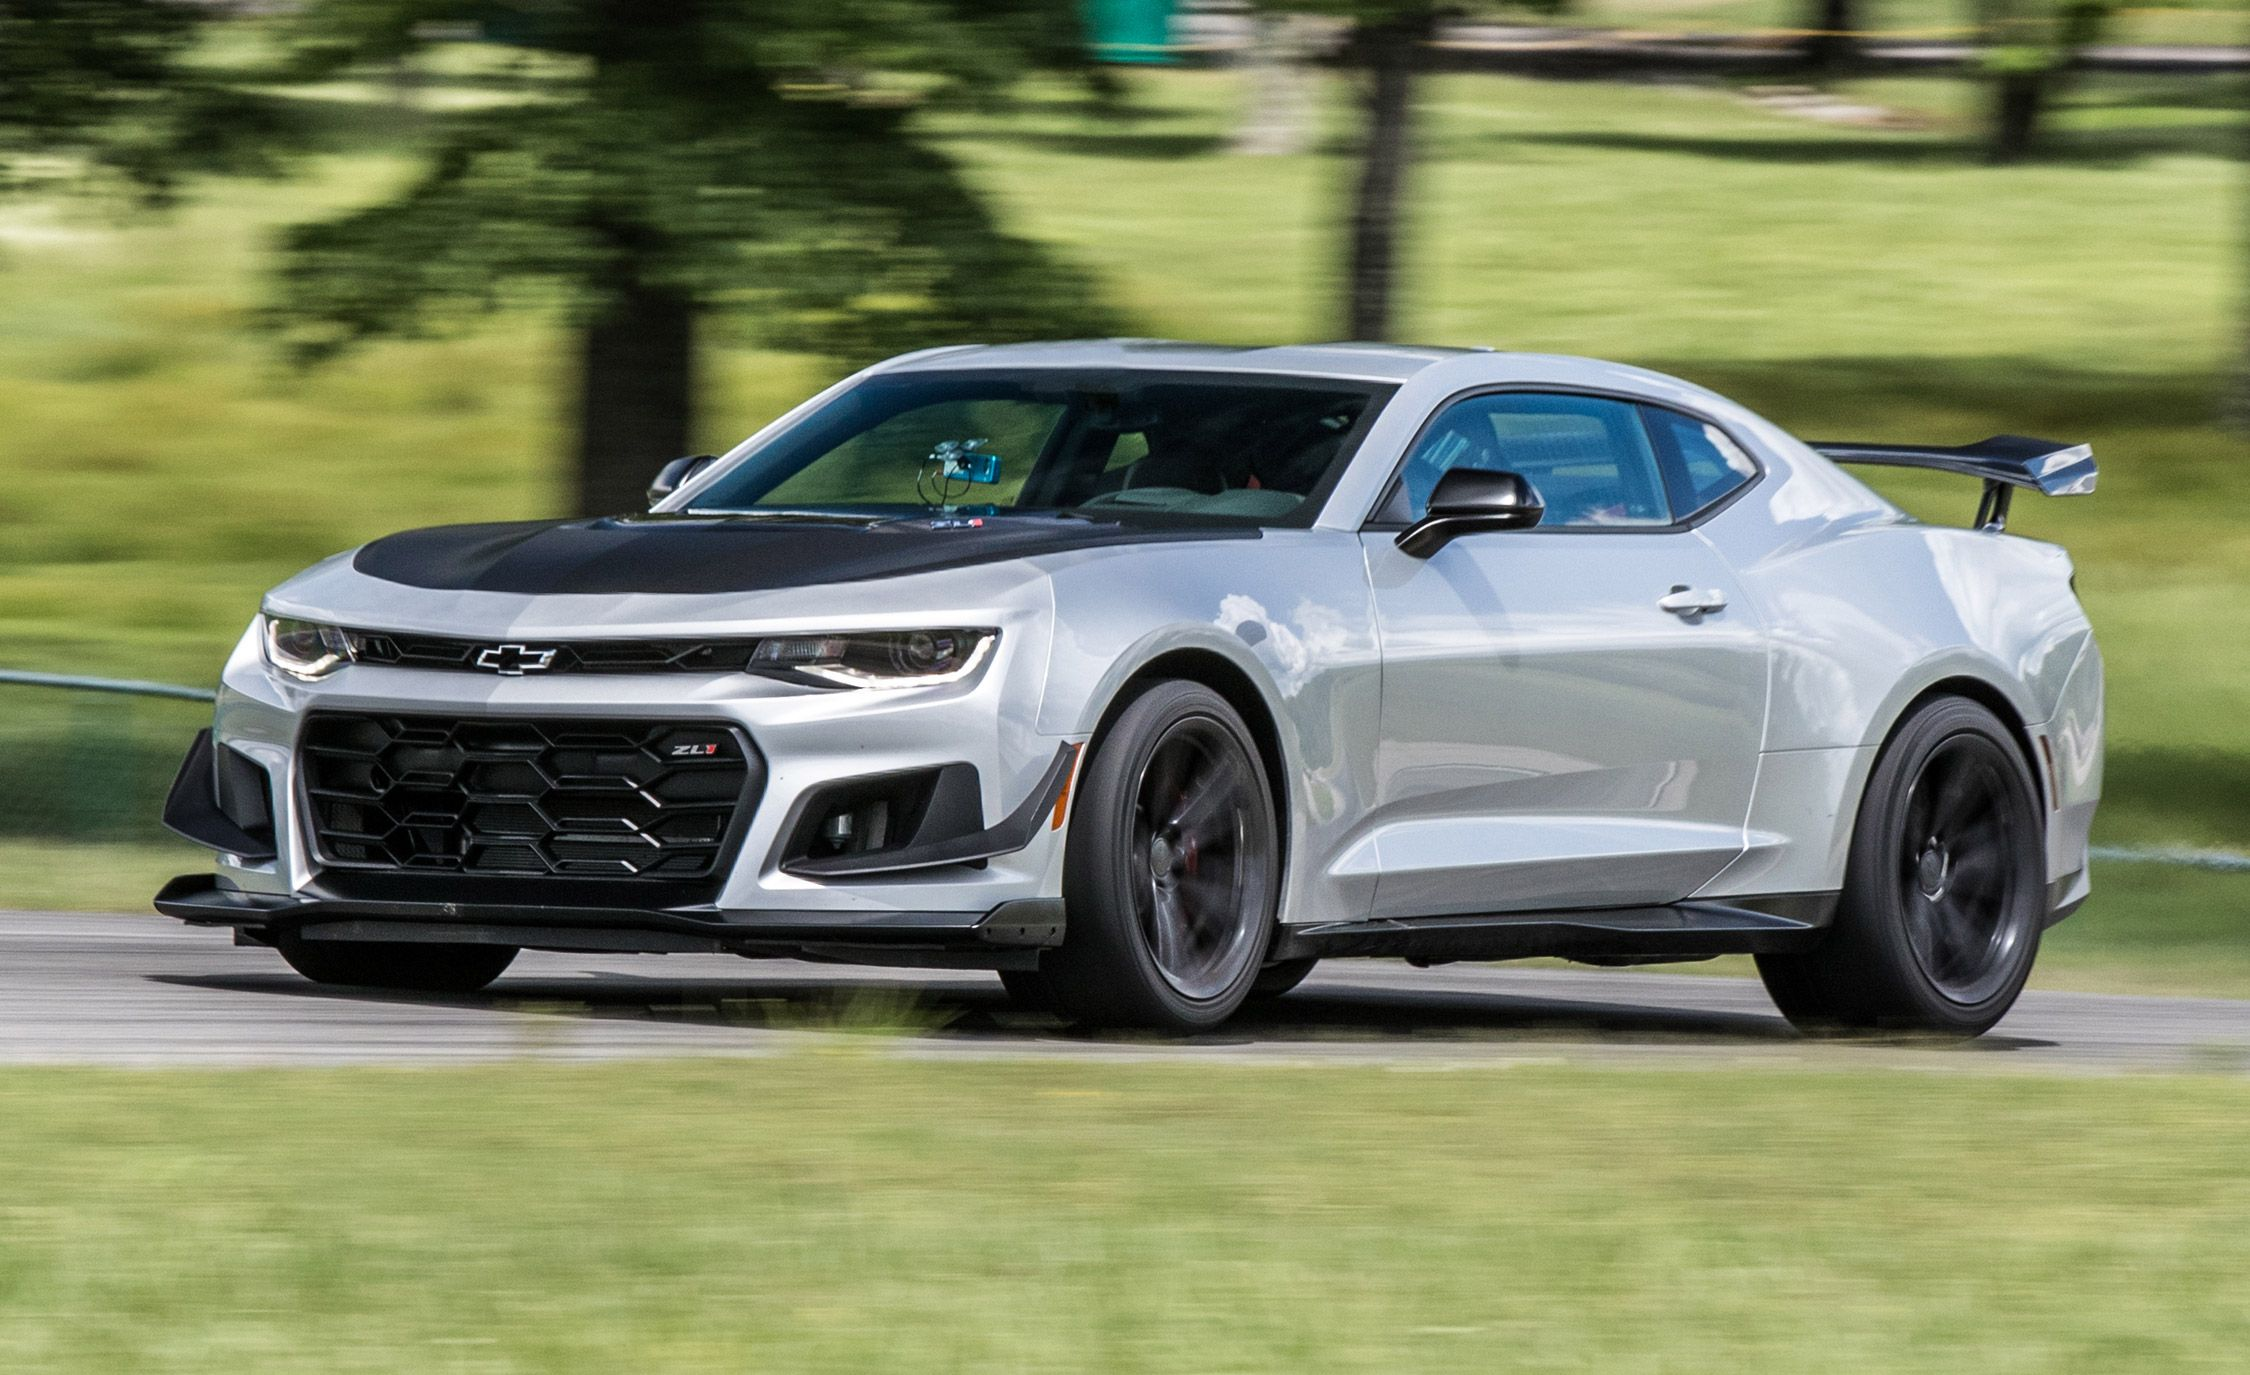 2018 Chevrolet Camaro ZL1 1LE Test | Review | Car and Driver